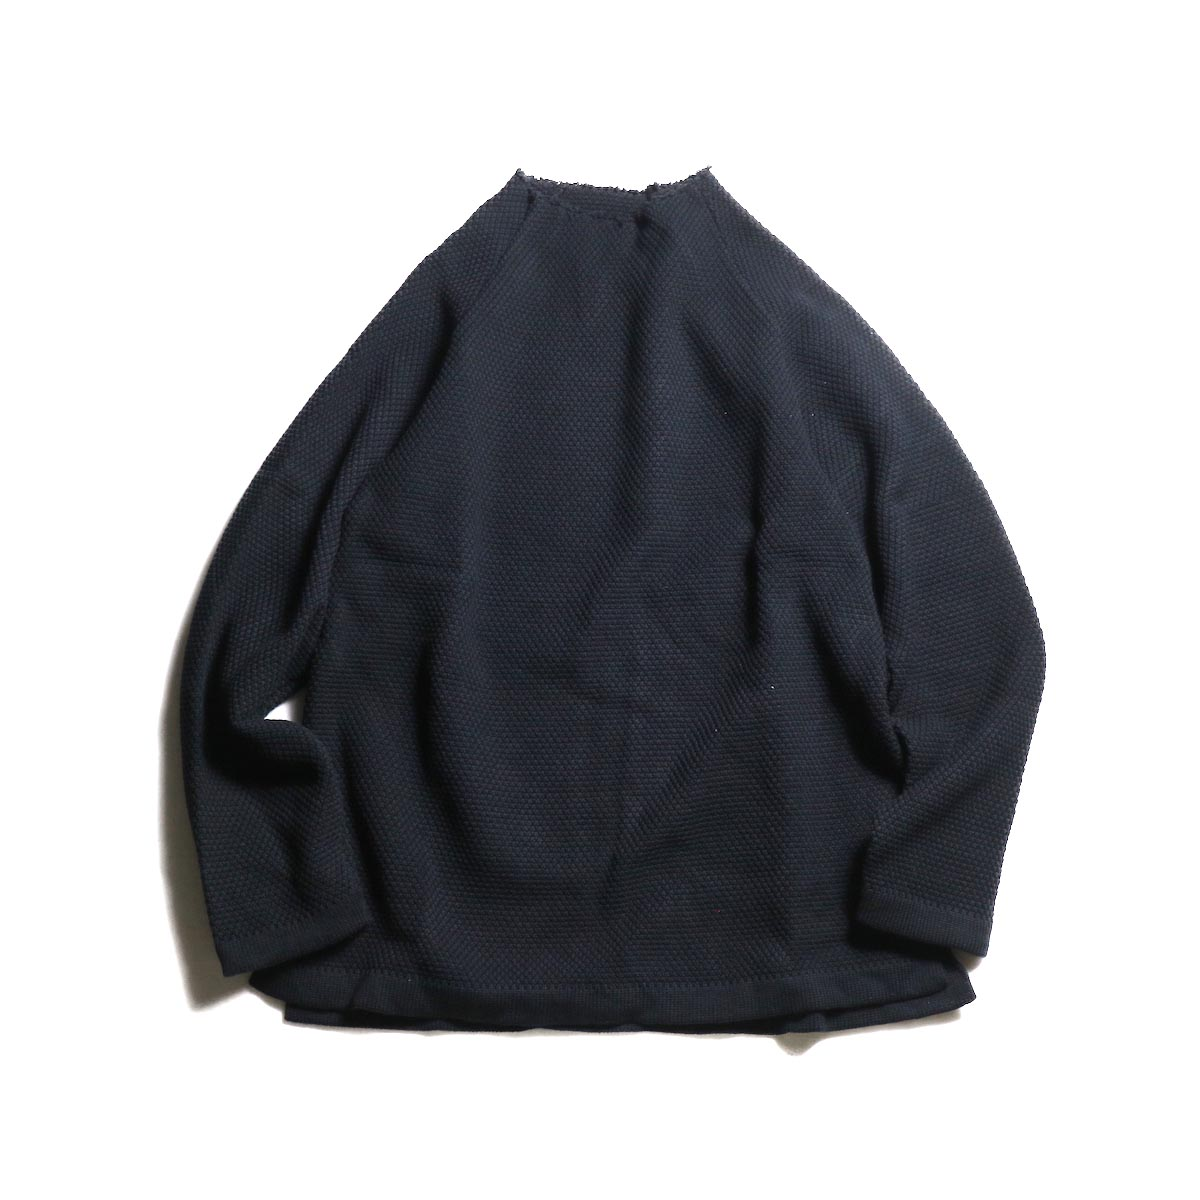 CURLY / KIPS BTL SWEATER (Black)